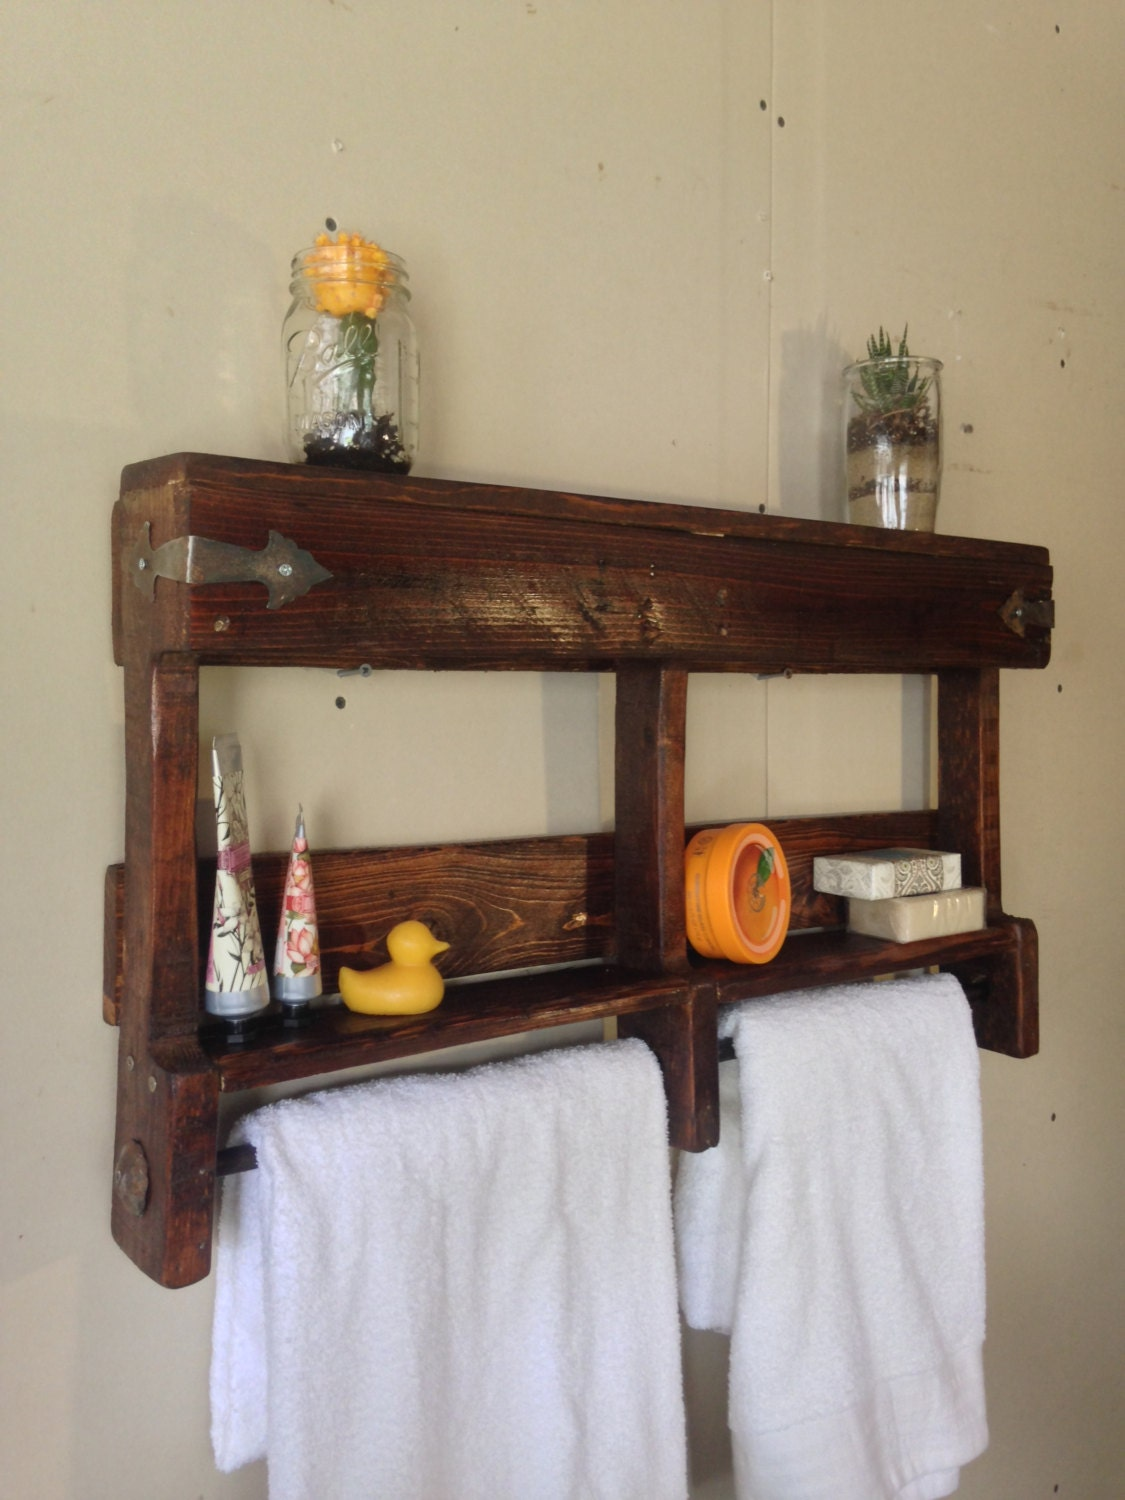 rustic bathroom towel rack rustic bathroom shelf by seasiderustics. Black Bedroom Furniture Sets. Home Design Ideas